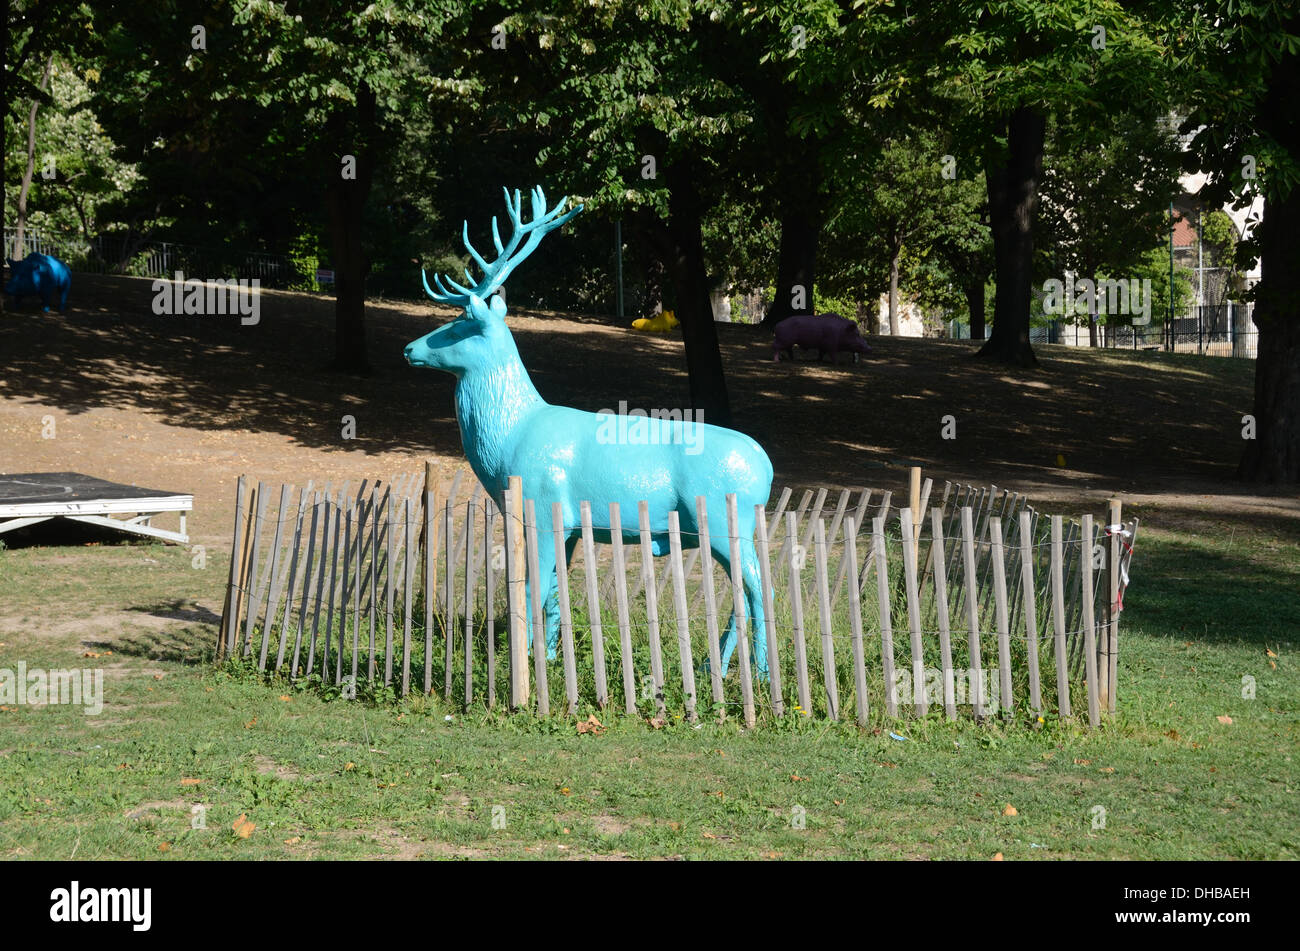 Fenced in Blue Plastic Resin Life-Size Deer at Marseille Funny Zoo France - Stock Image